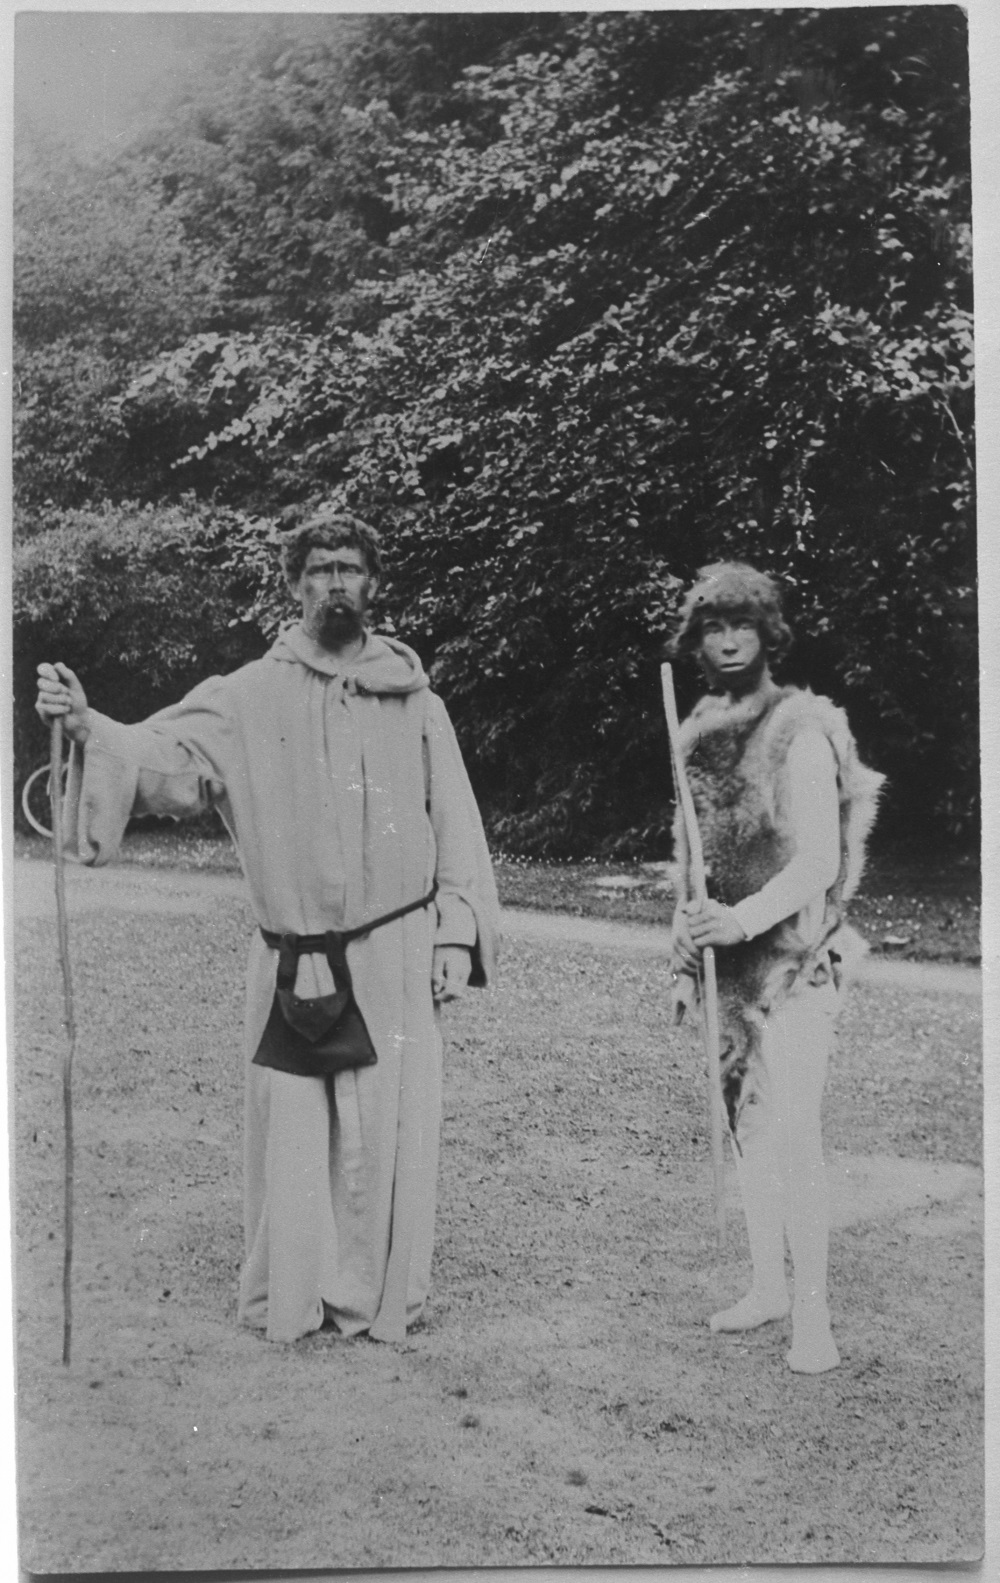 Photograph of character in role of Phoenician trader and a Monk in a scene from Butleigh Revel.